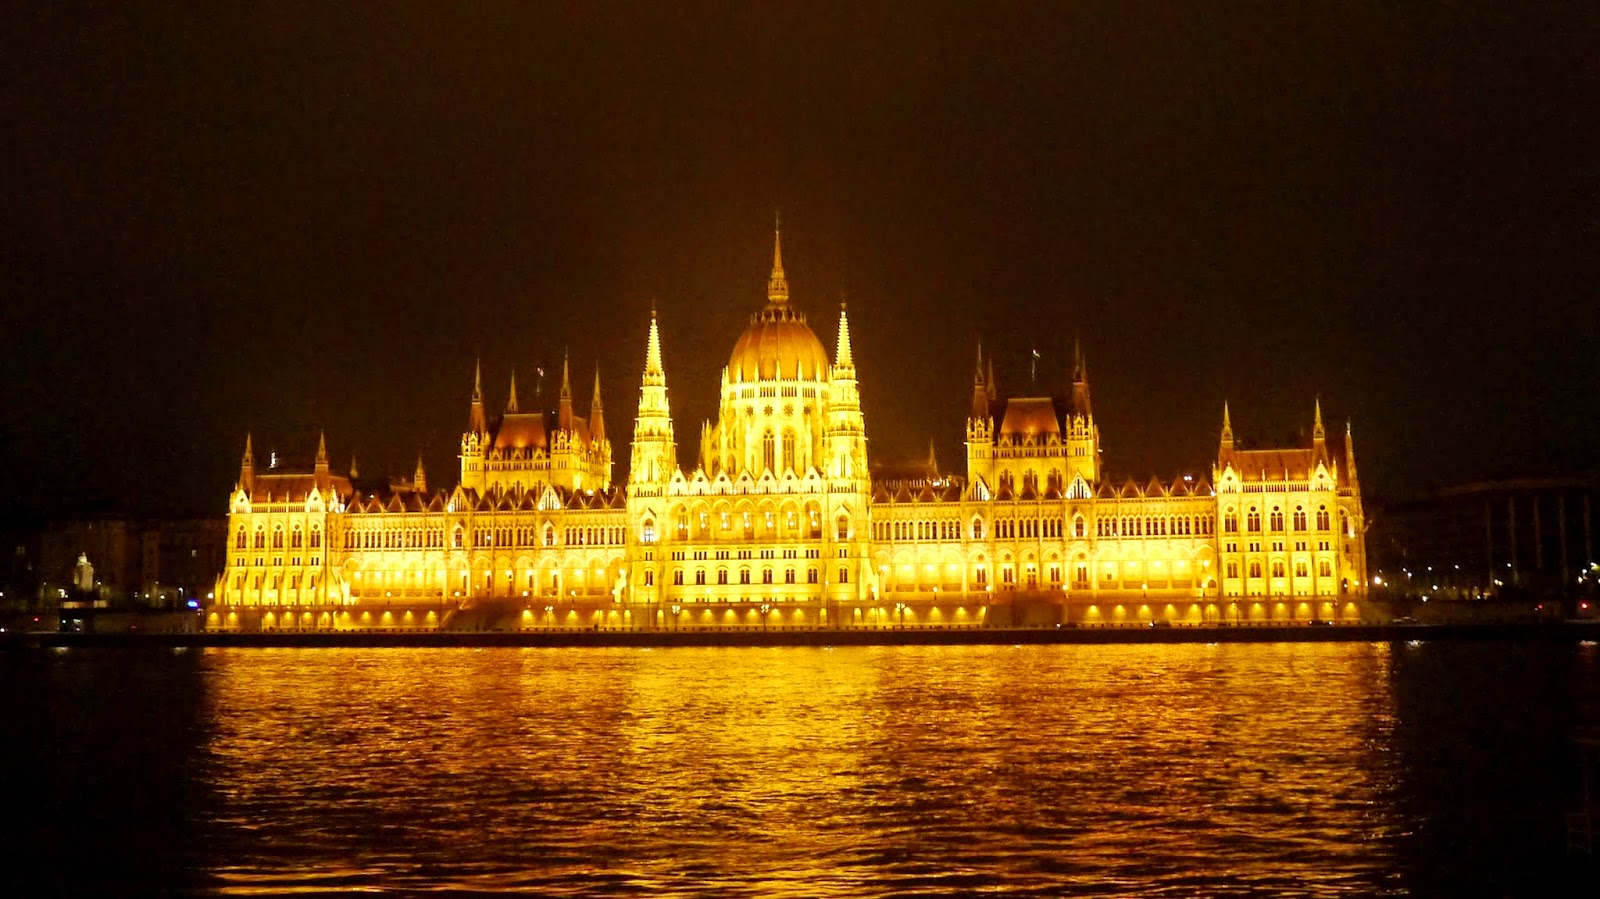 Budapest Hungarian Parliament building at night